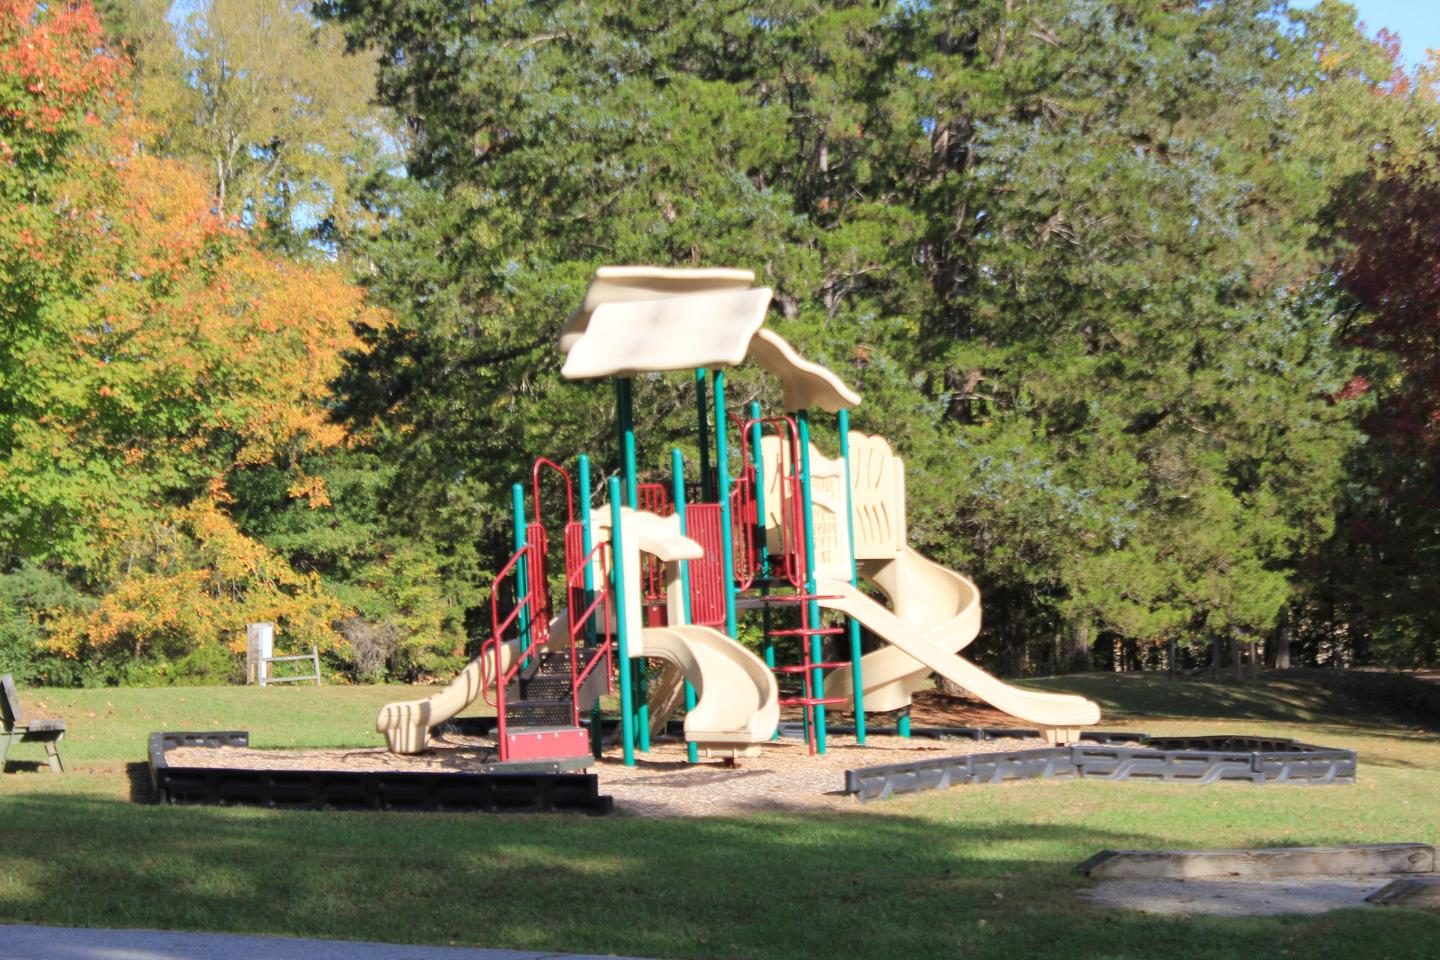 NBP Area C PlaygroundWelcome to North Bend Park! This is the playground in Area C located in North Bend Park.